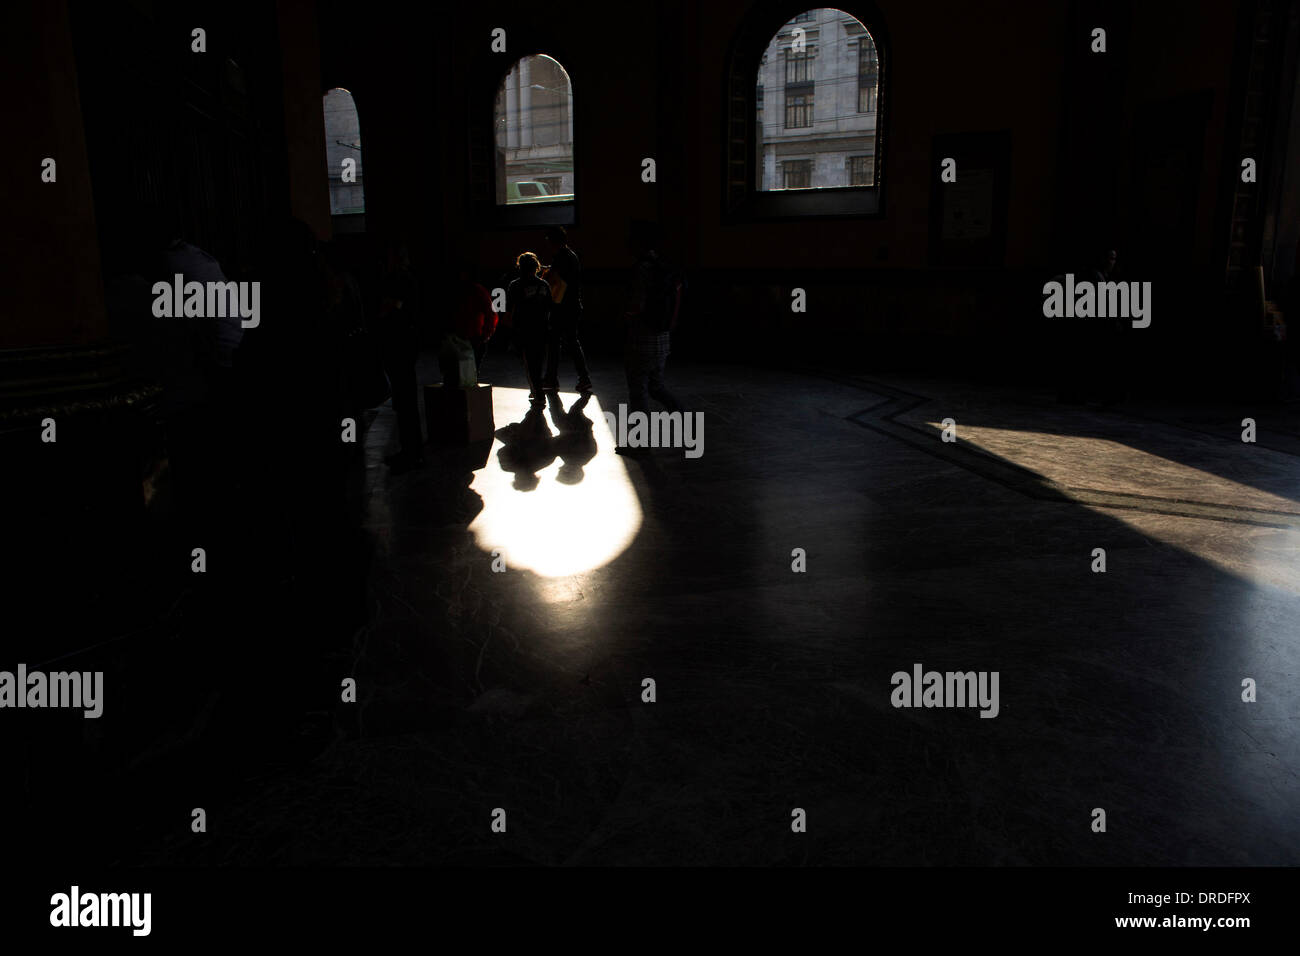 Mexico City. 23rd Jan, 2014. Image taken on Jan. 22, 2014 shows people walking inside the Postal Palace, in Mexico City's Historic Center, capital of Mexico. Mexico City's Historic Center has a rich architecture that brings together different styles of the colonial and contemporary eras in the same space. © Guillermo Arias/Xinhua/Alamy Live News - Stock Image